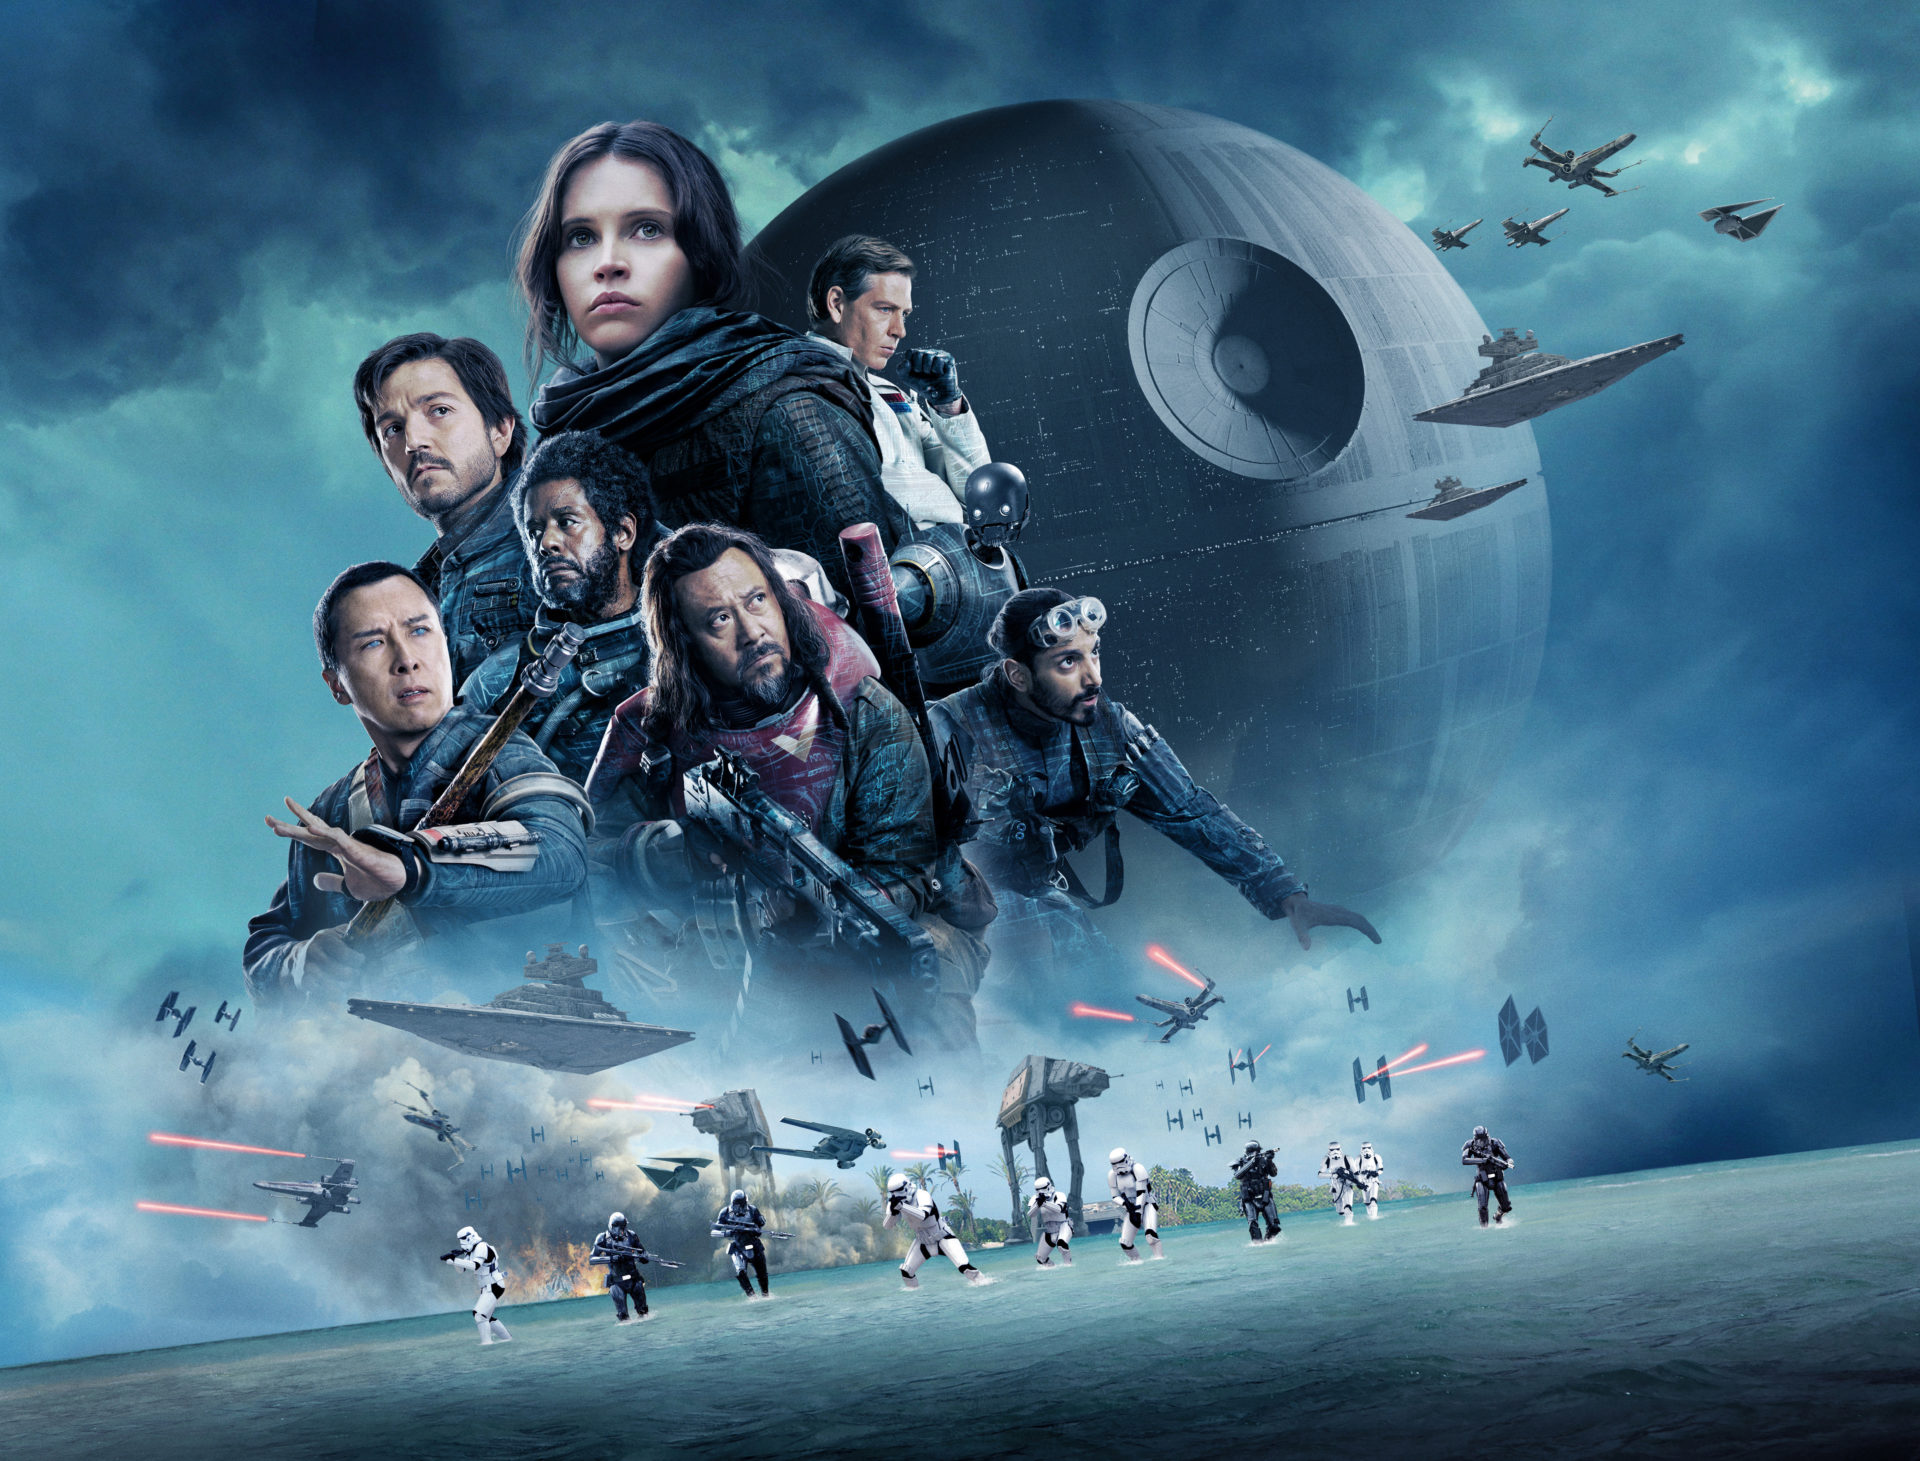 Star Wars Rogue One Hd Wallpaper New Tab Theme Playtime